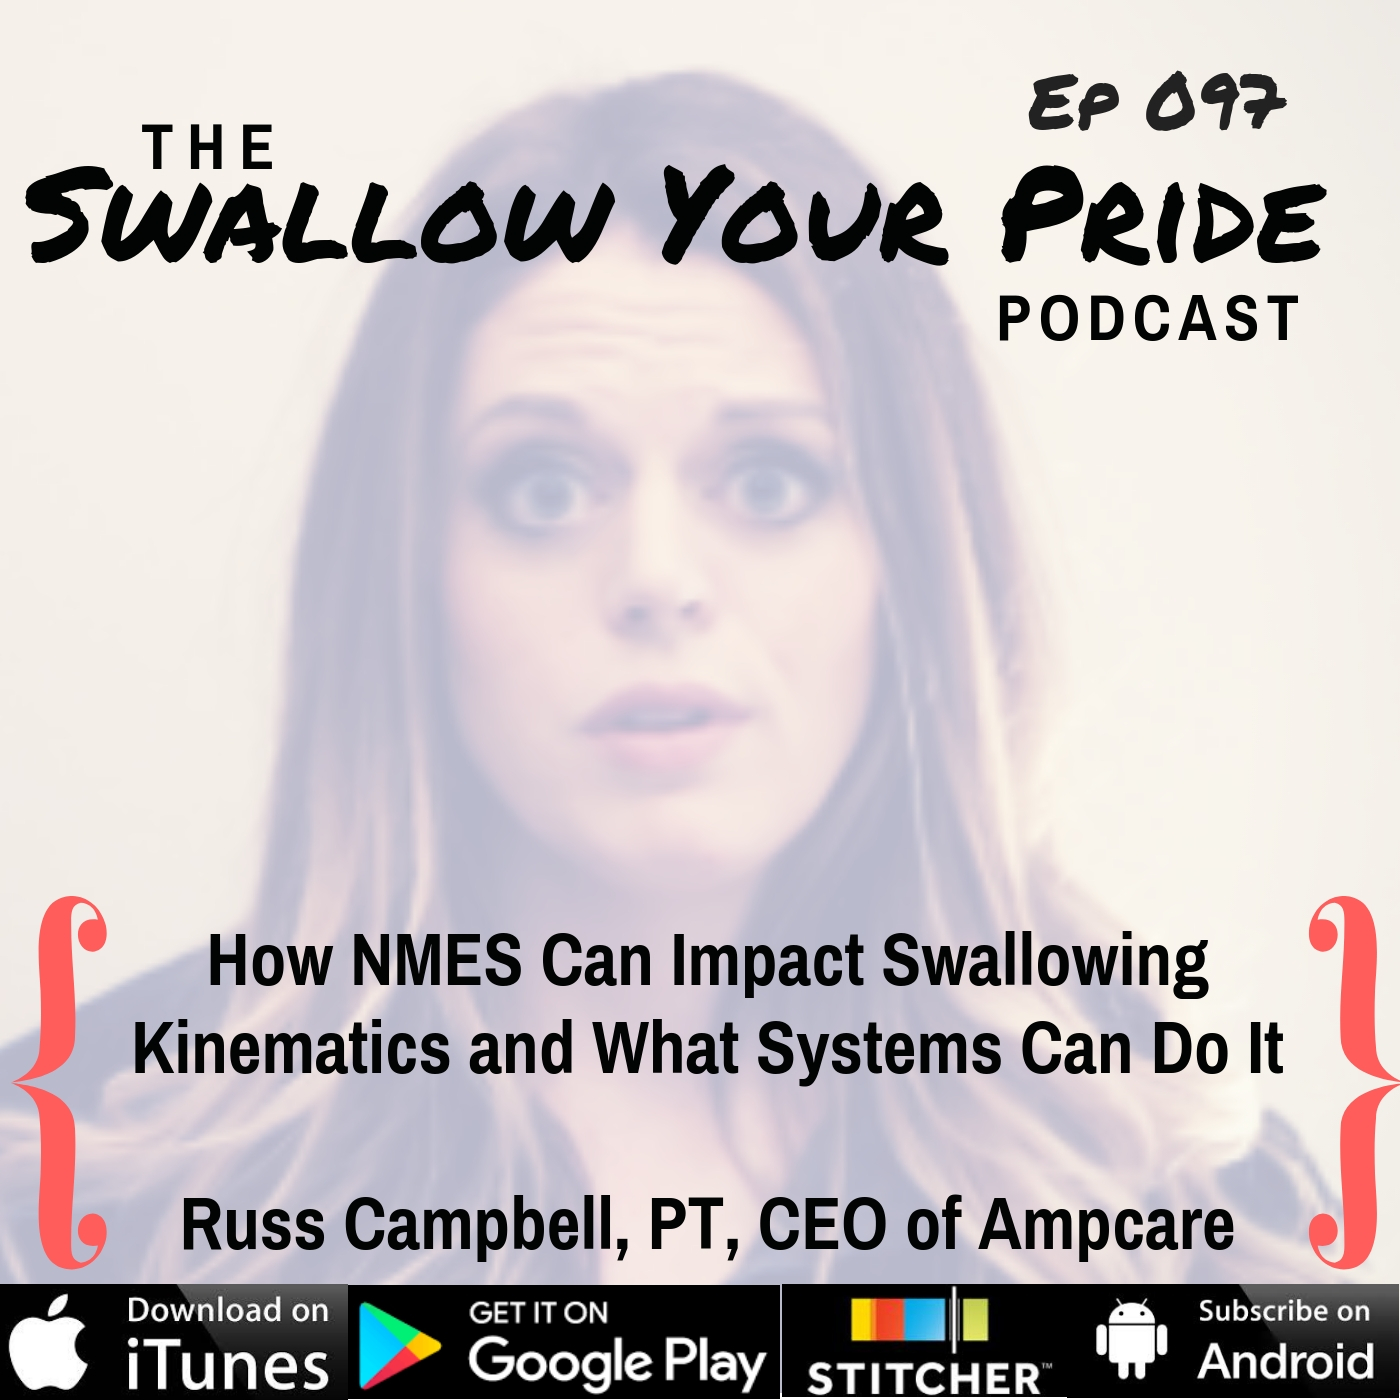 097 – Russ Campbell, PT, CEO of AmpCare – How NMES Can Impact Swallowing Kinematics and What Systems Can Do It